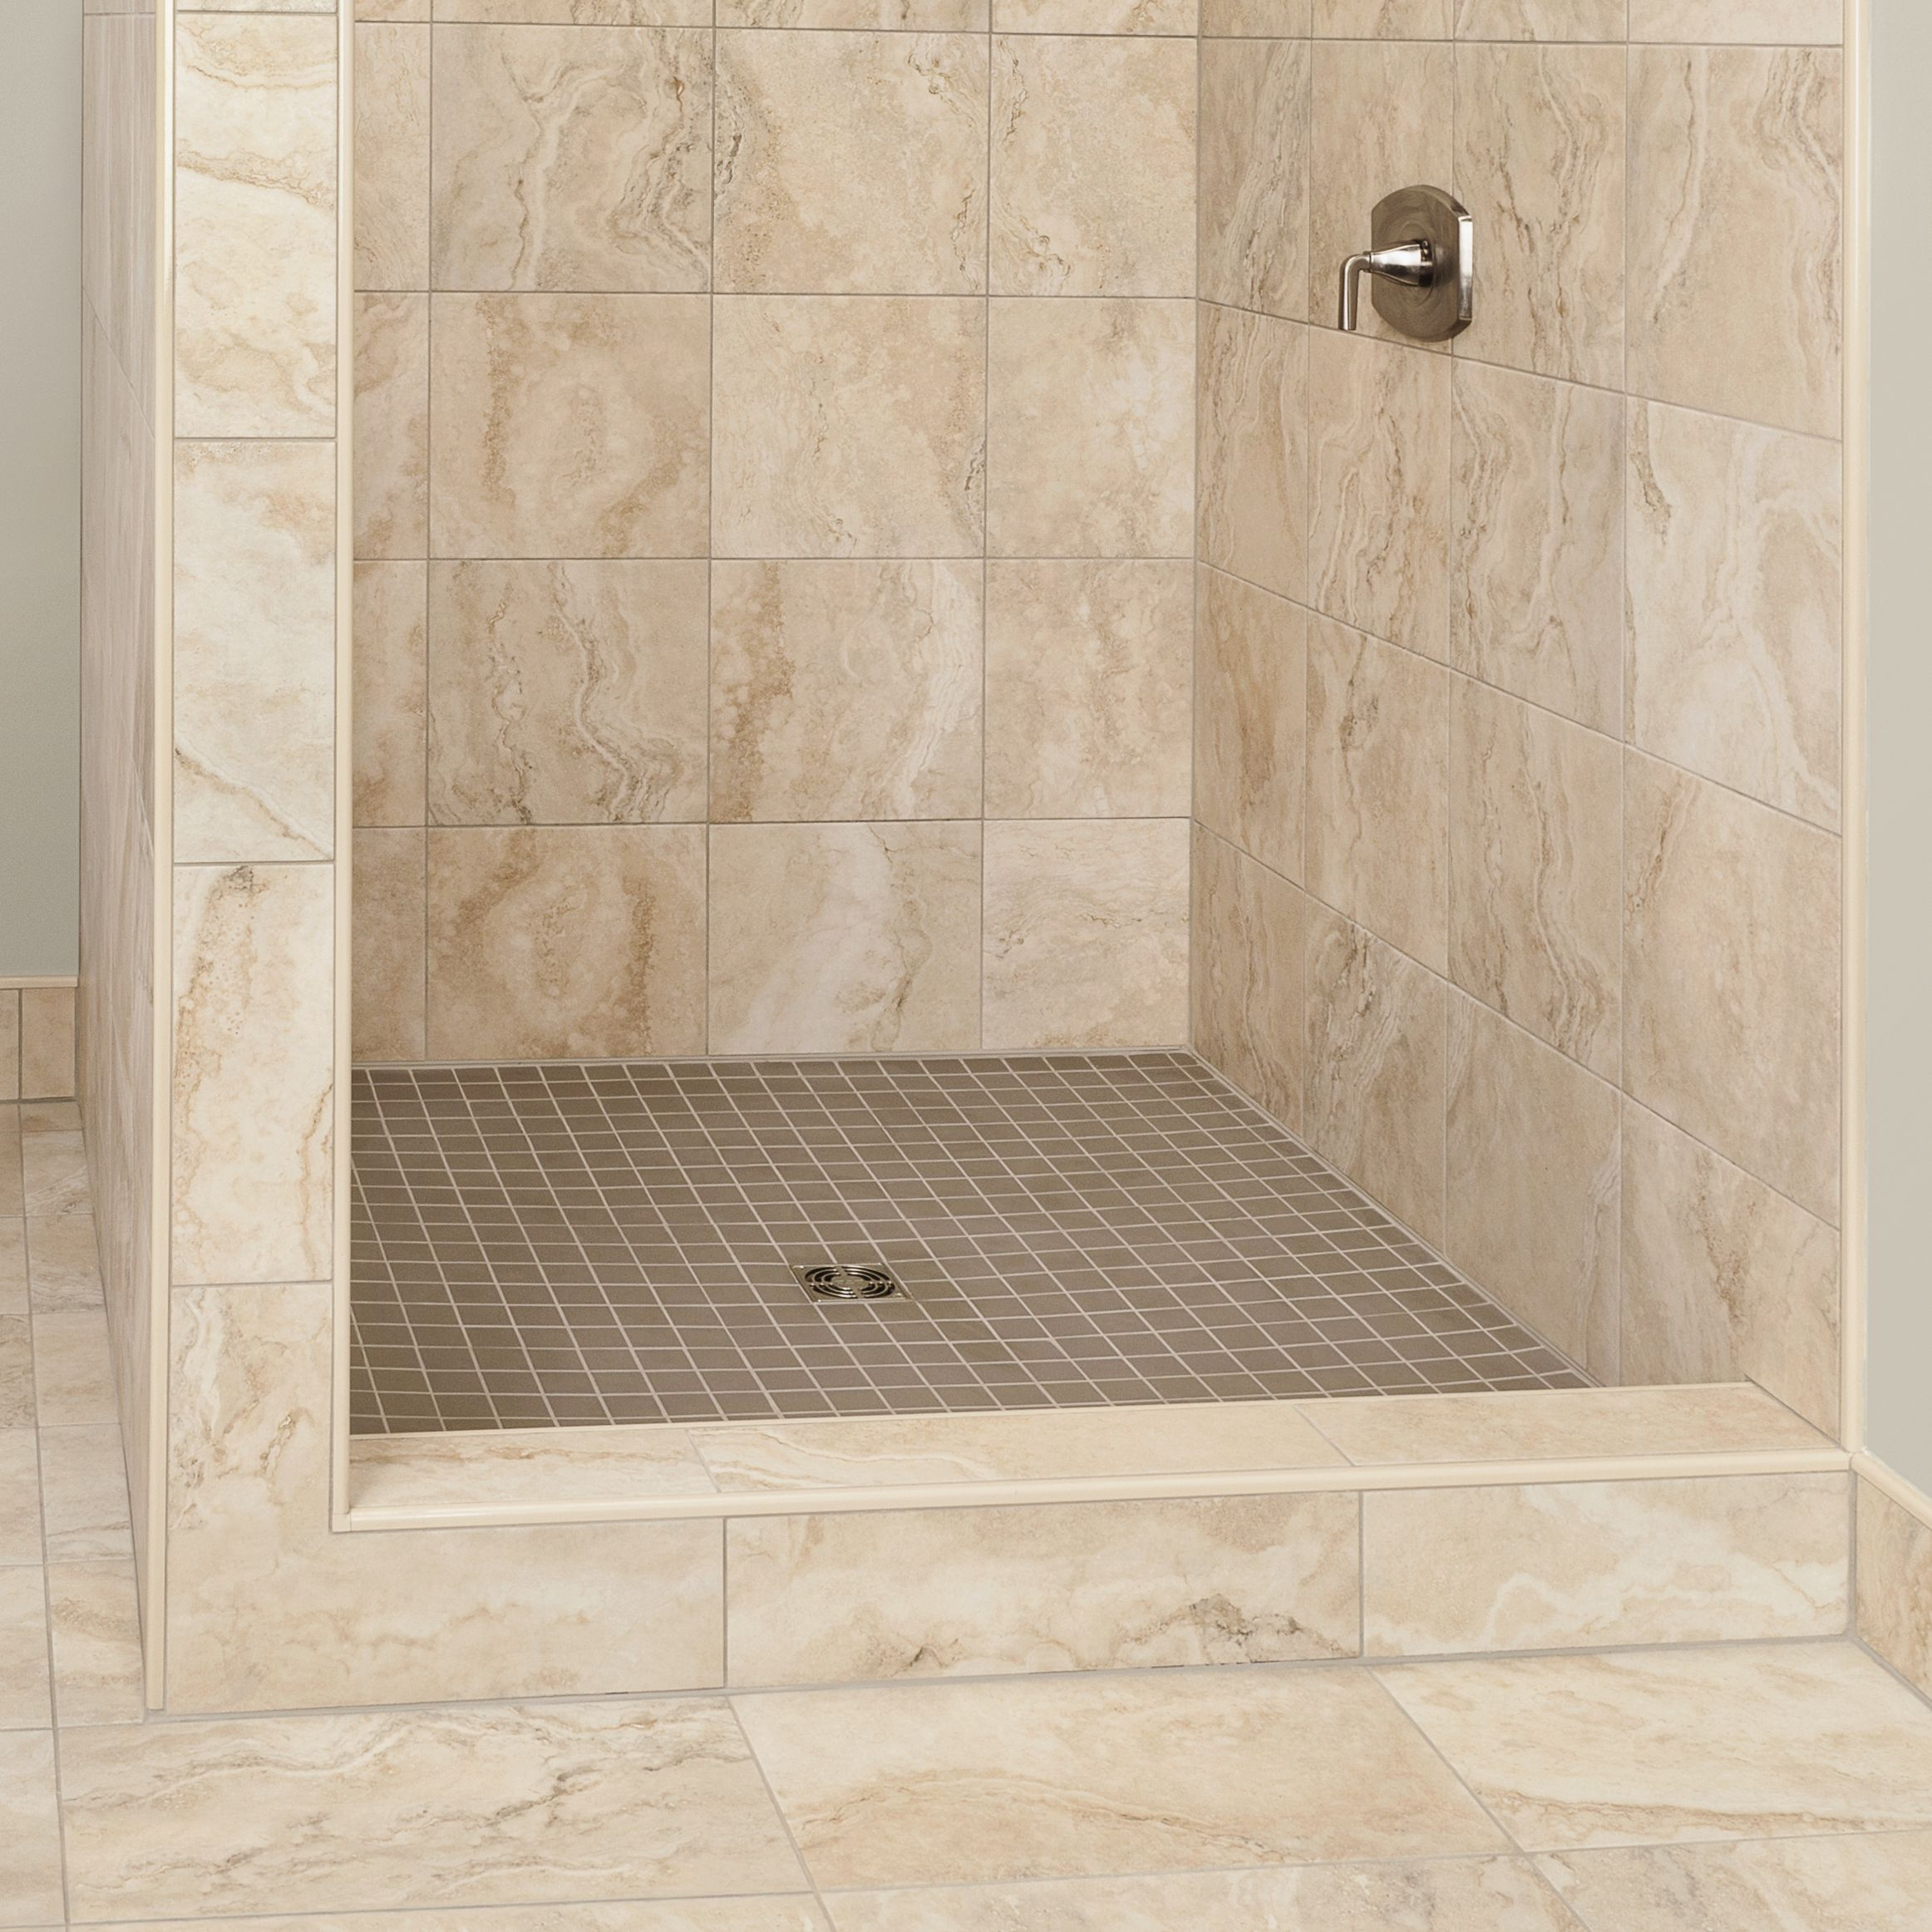 Point Drain Shower With Curb With KERDI Waterproofing